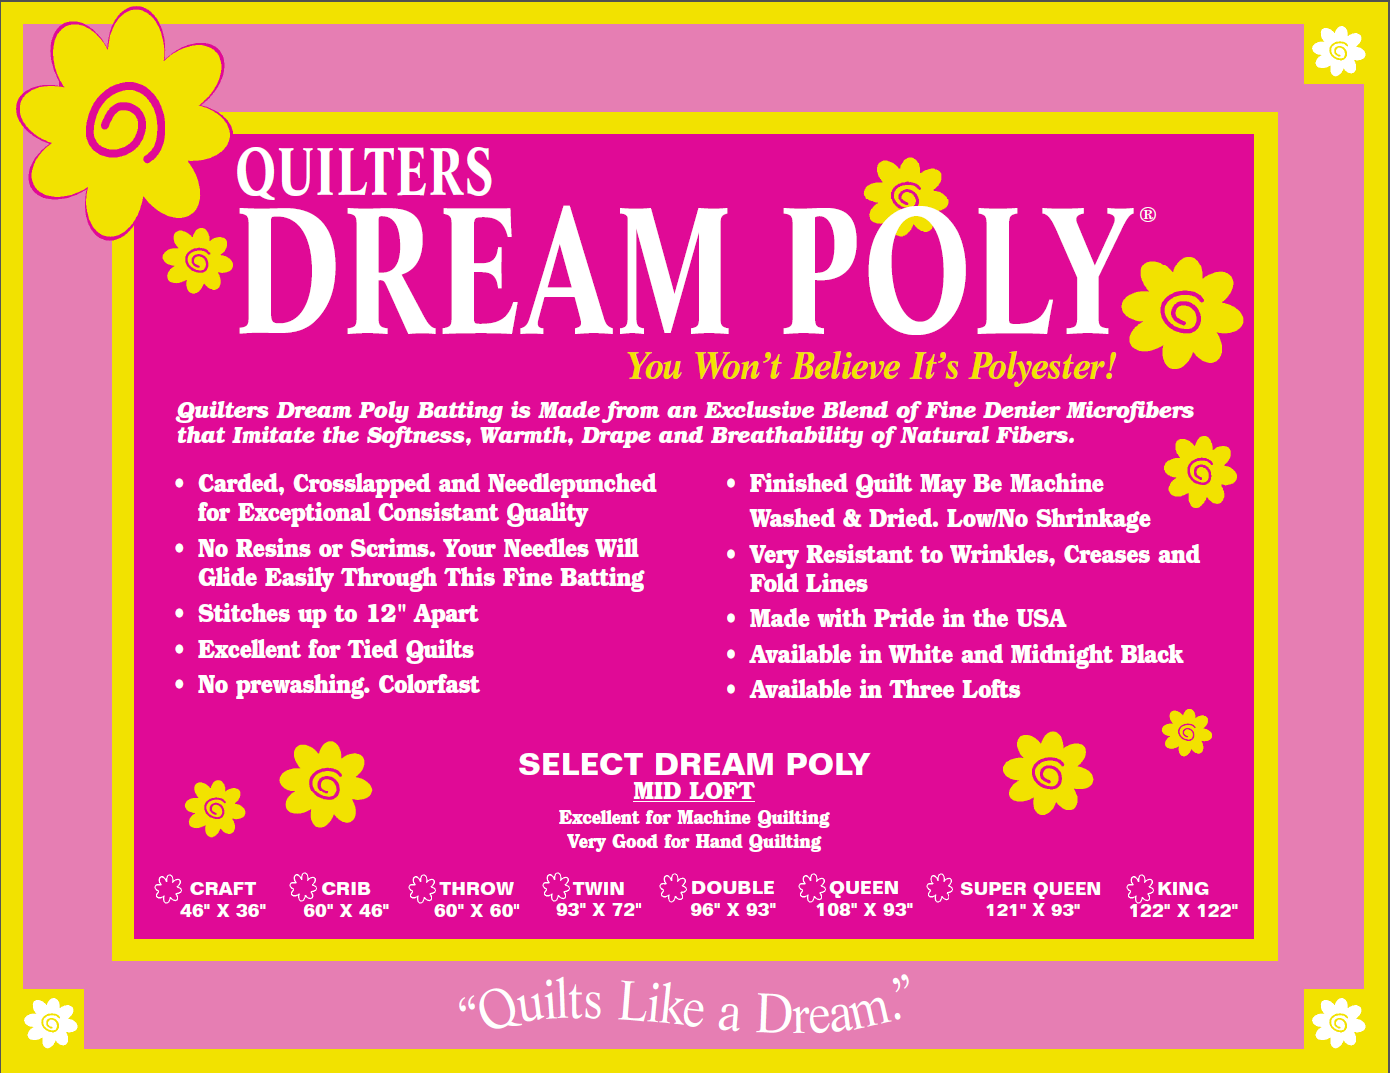 Quilters Dream Poly Select - Craft 36 x 46